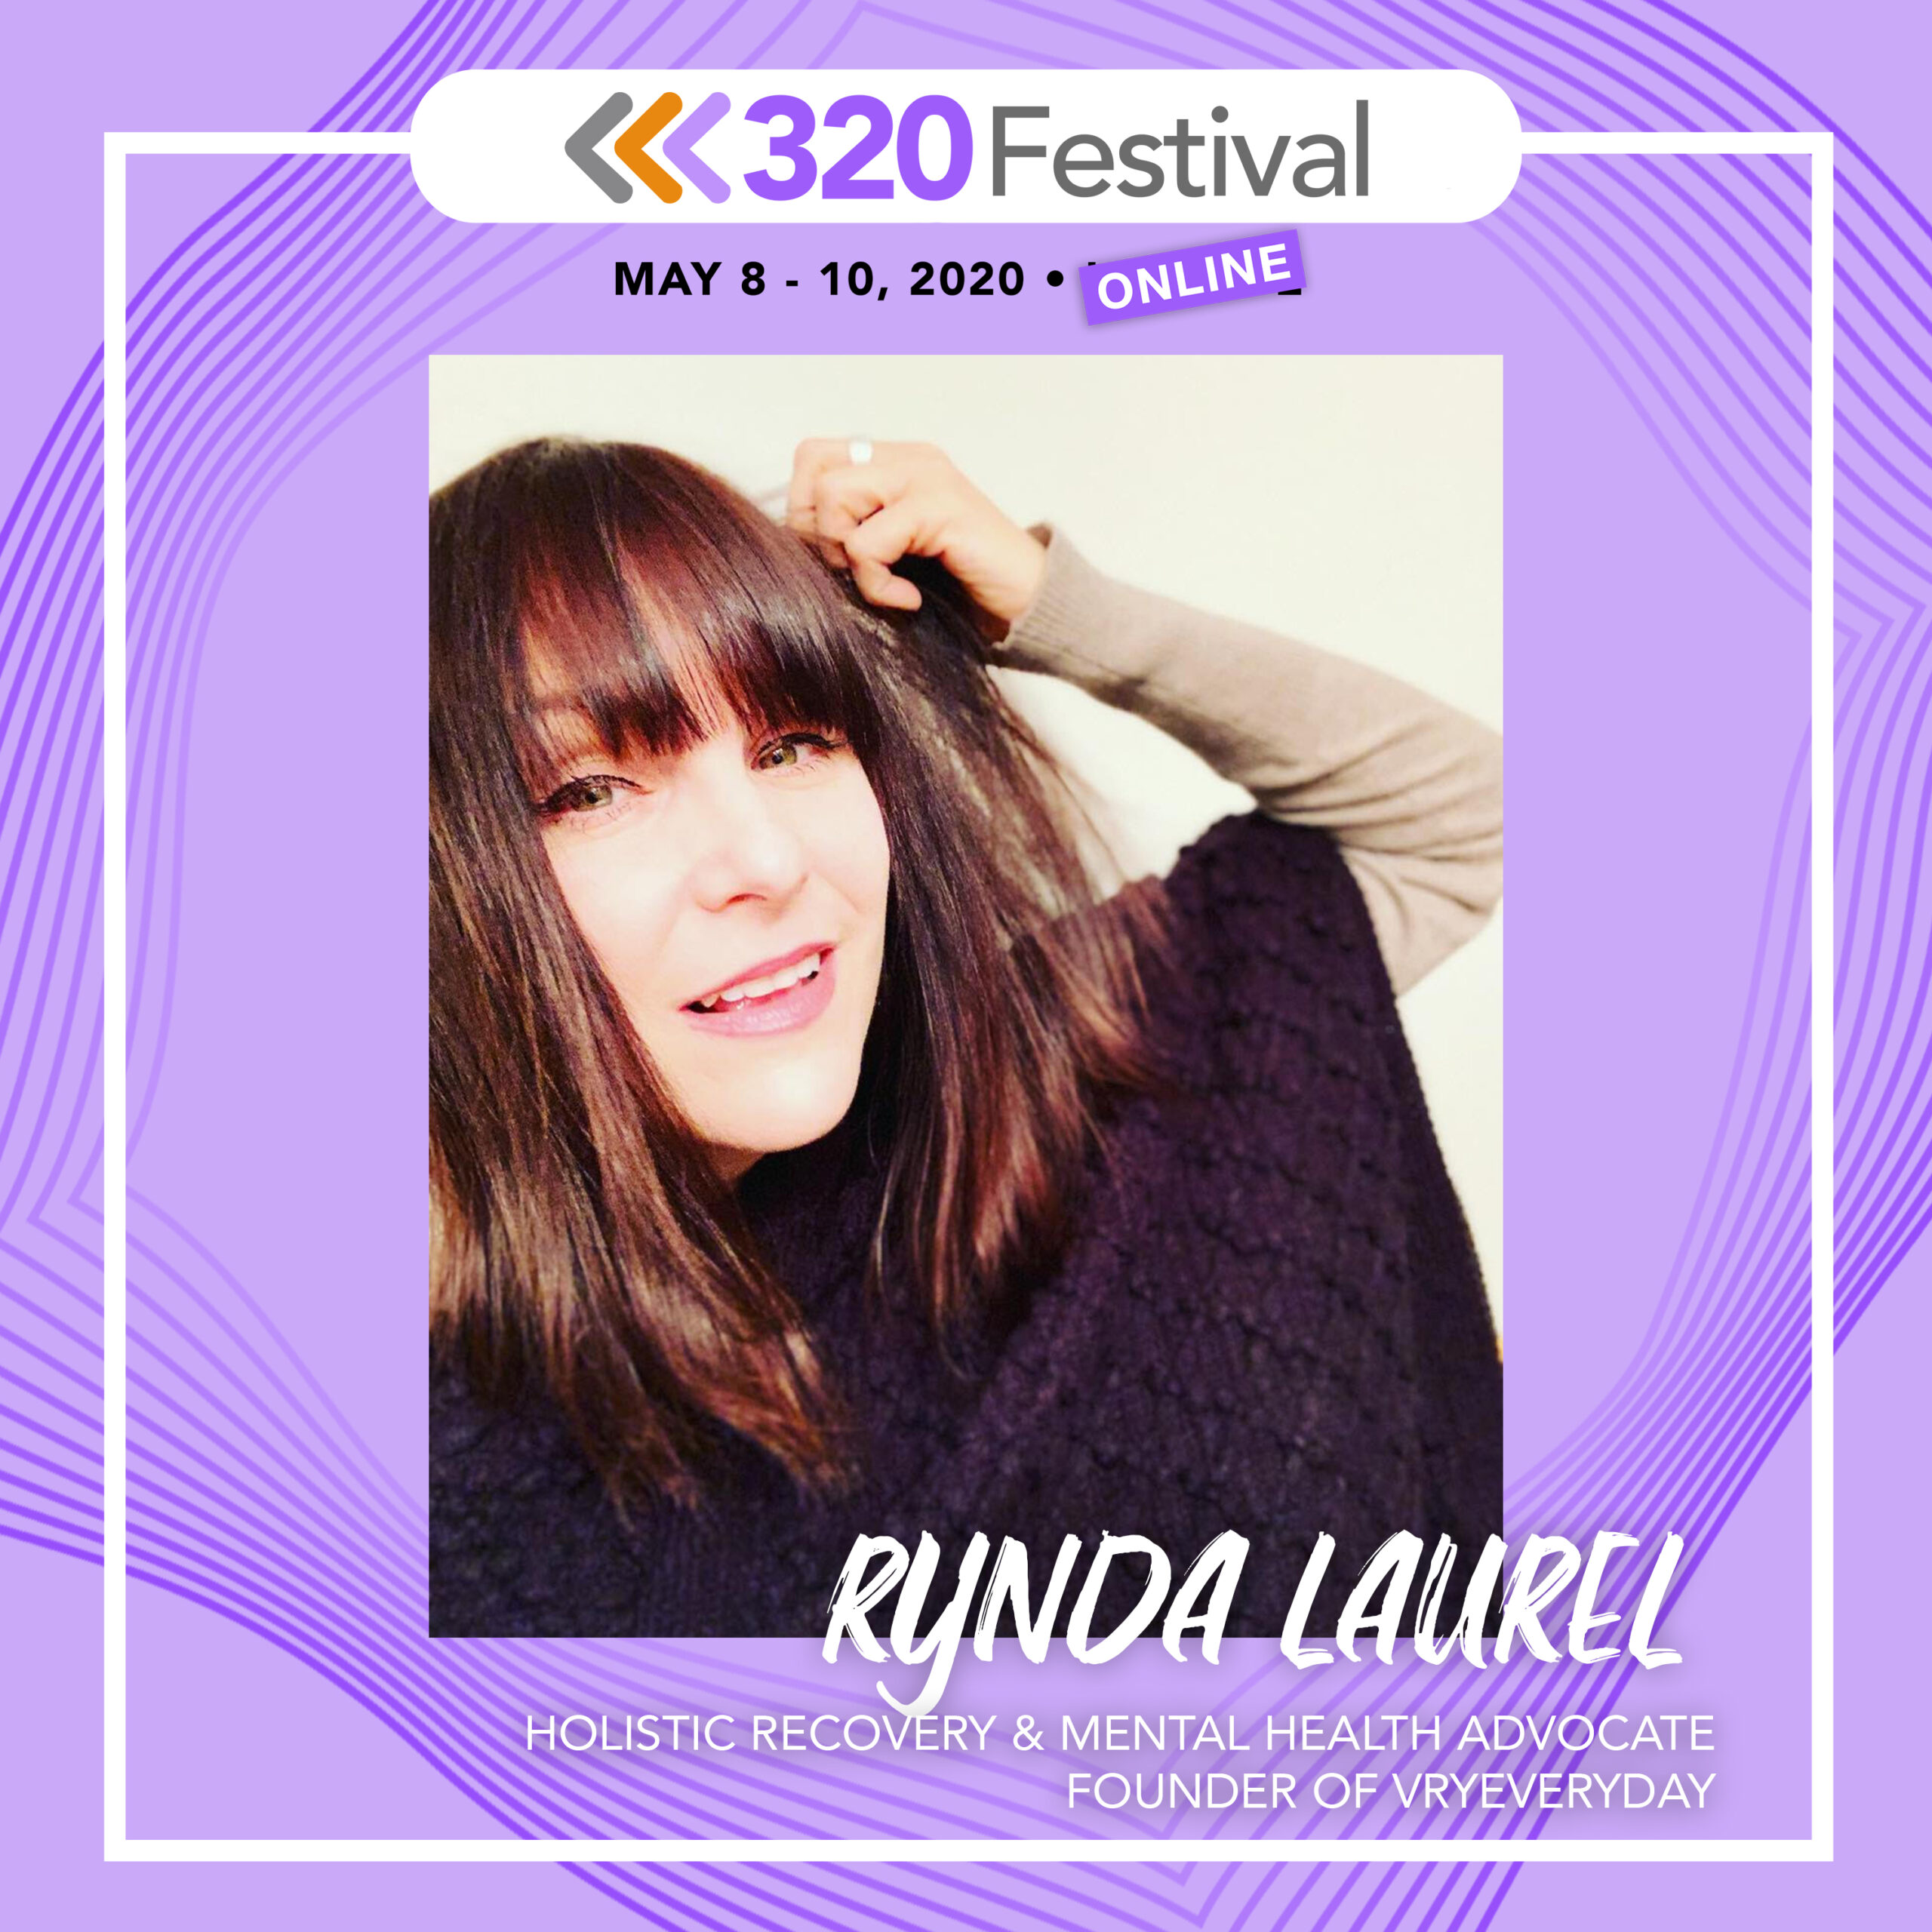 Join us for the 320 Festival Online May 8-10